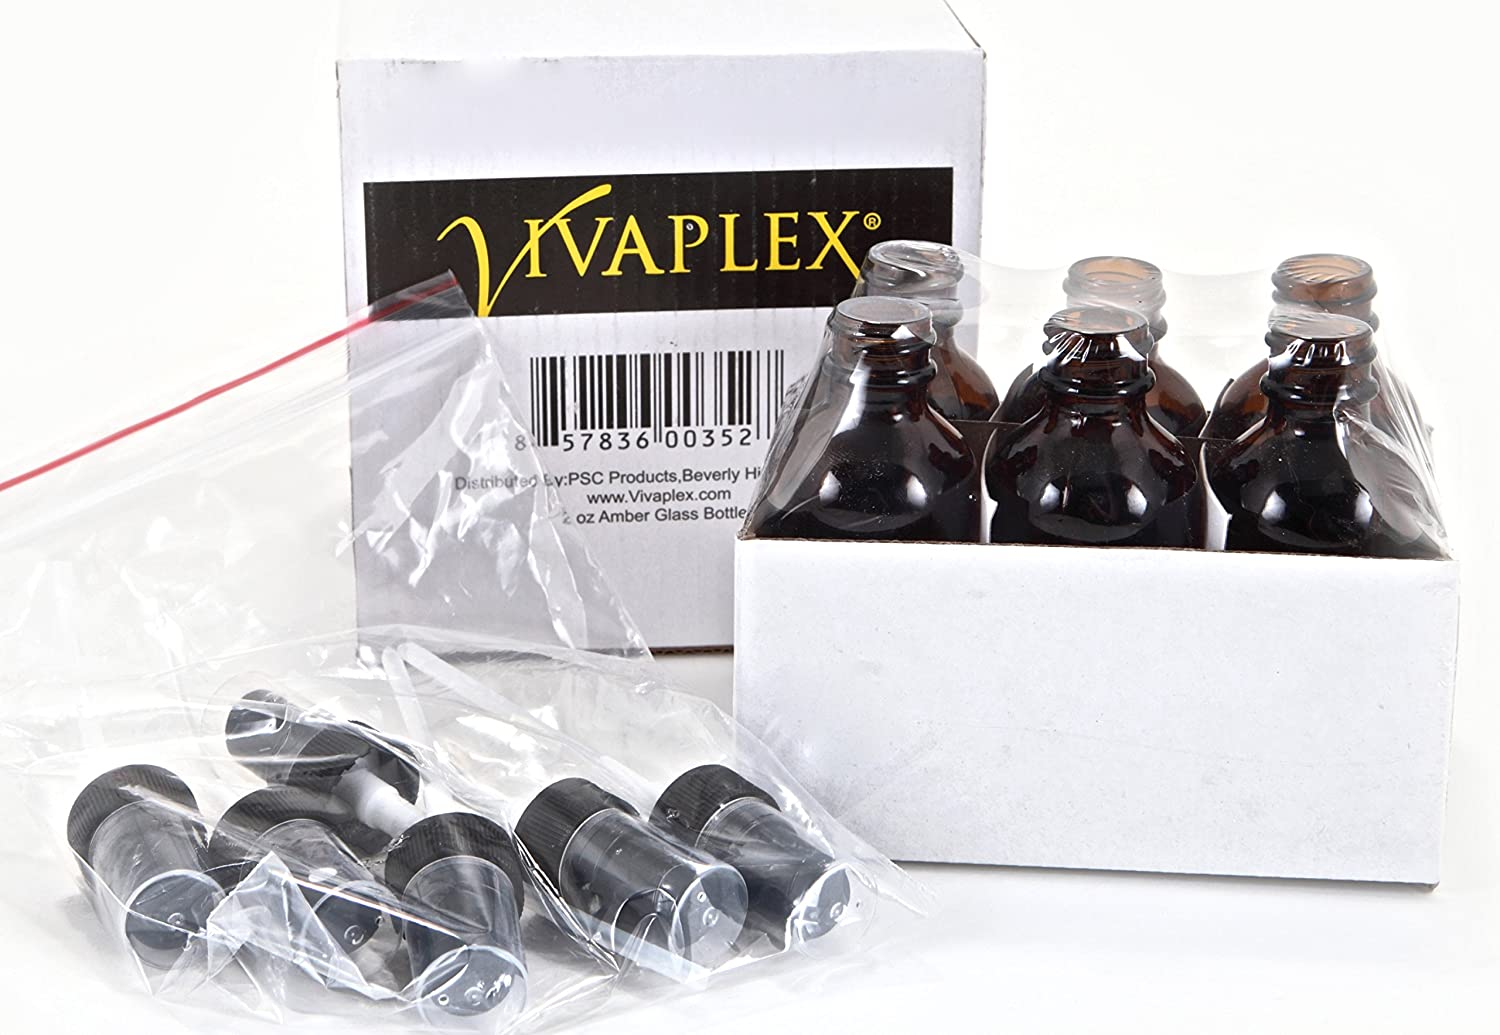 Vivaplex, 6, Amber, 2 oz Glass Bottles, with Black Fine Mist Sprayers